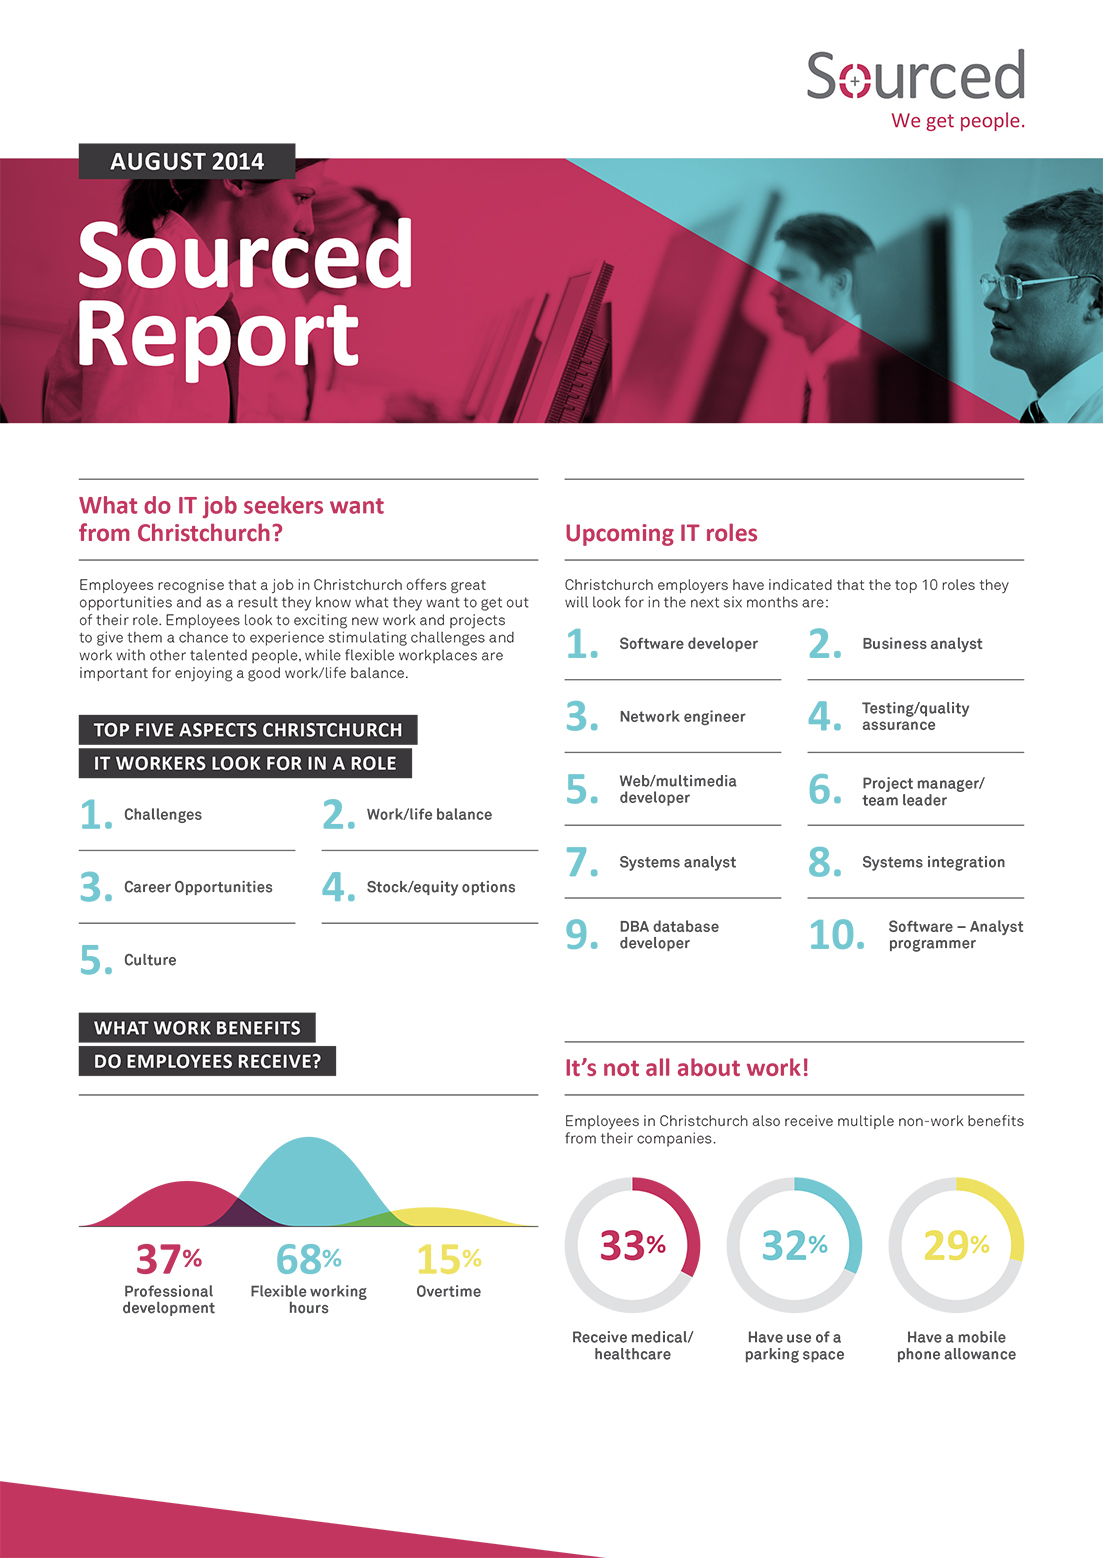 Sourced Report Page 2 | August 2014 Sourced Report Page 1 | August 2014 Infographic